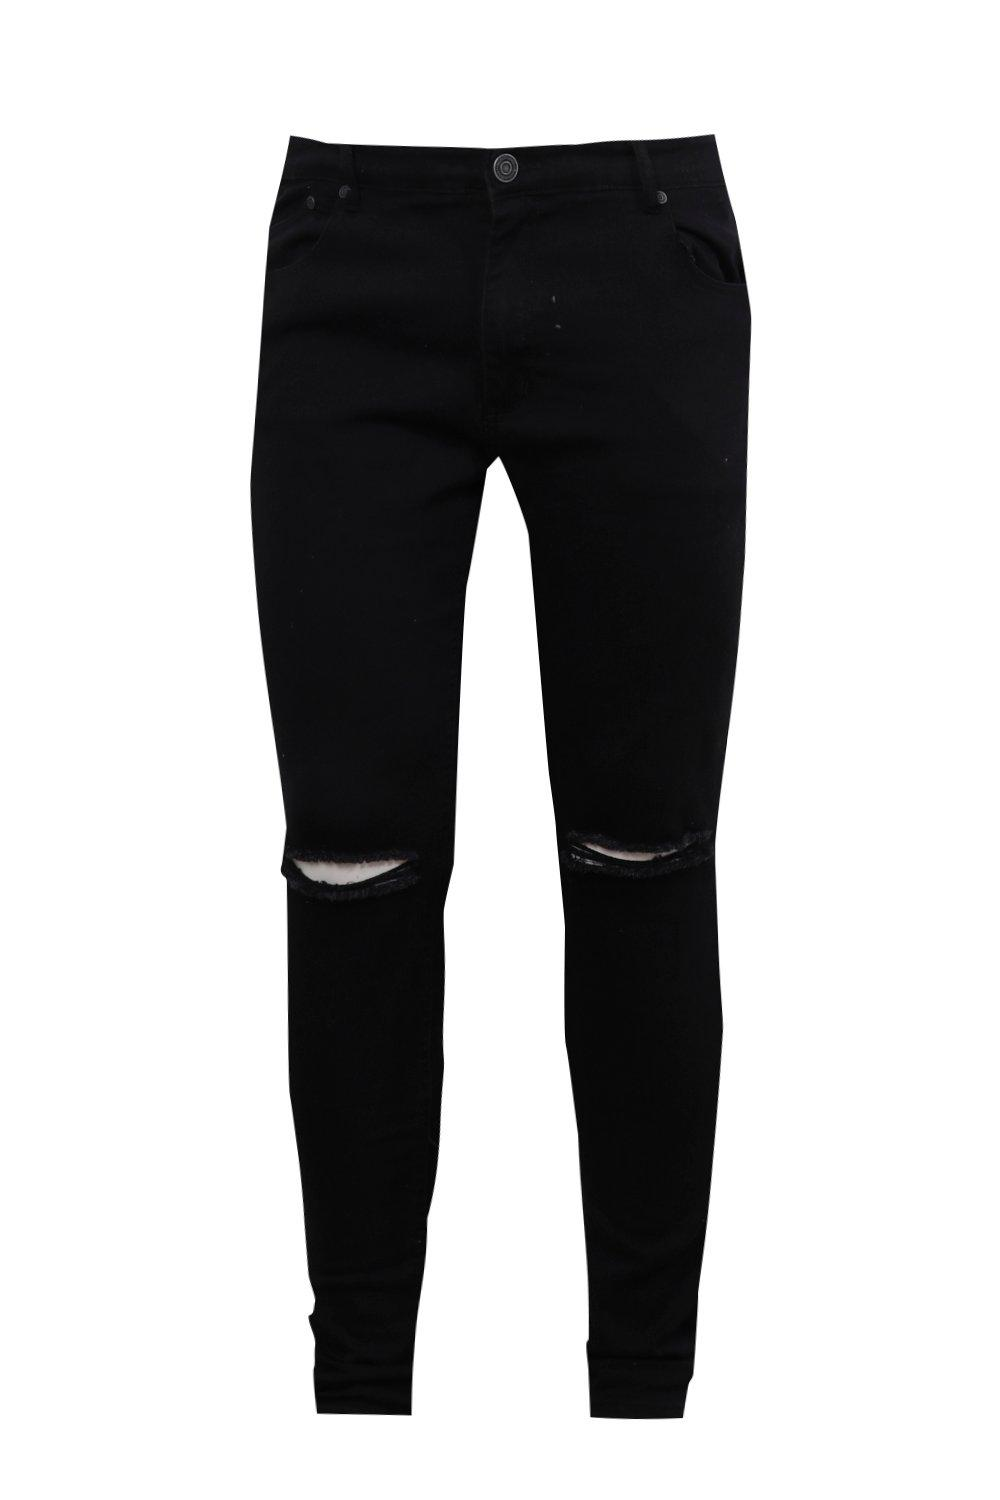 Jeans And Skinny Super Tall Knee black Big Ripped zaxBwq6q